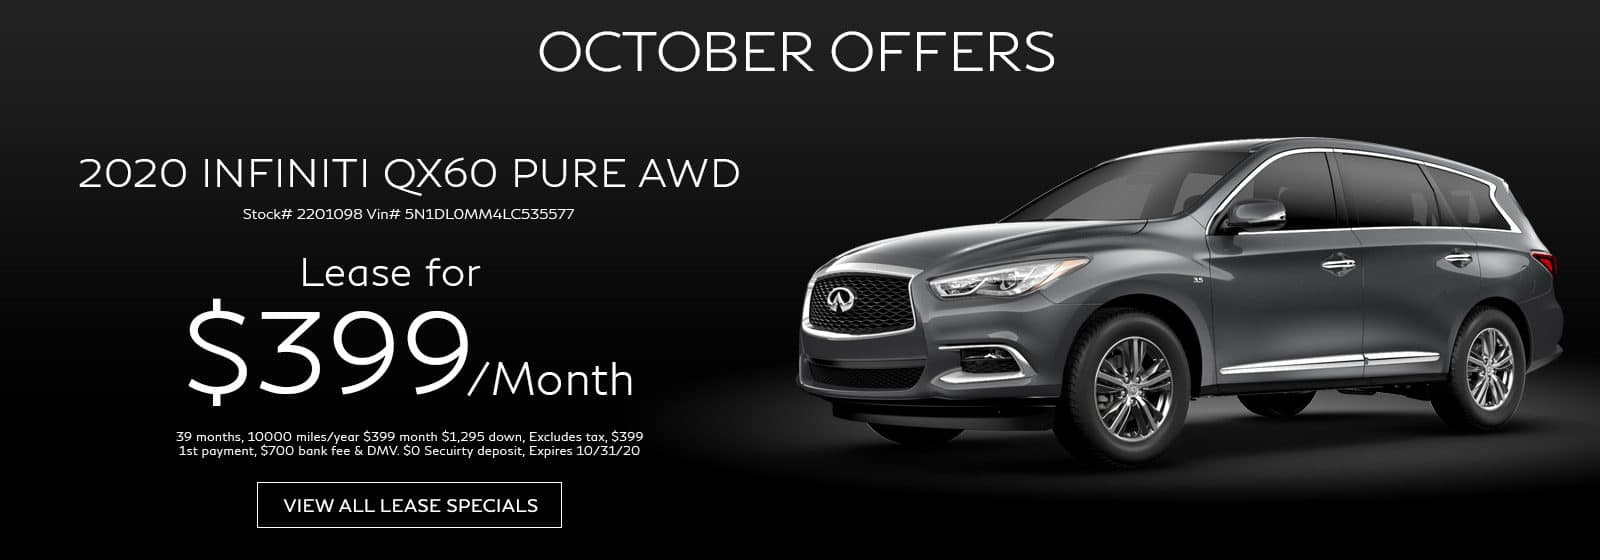 Homepage-Slider-INFINITI-October-Special-QX60-Pures